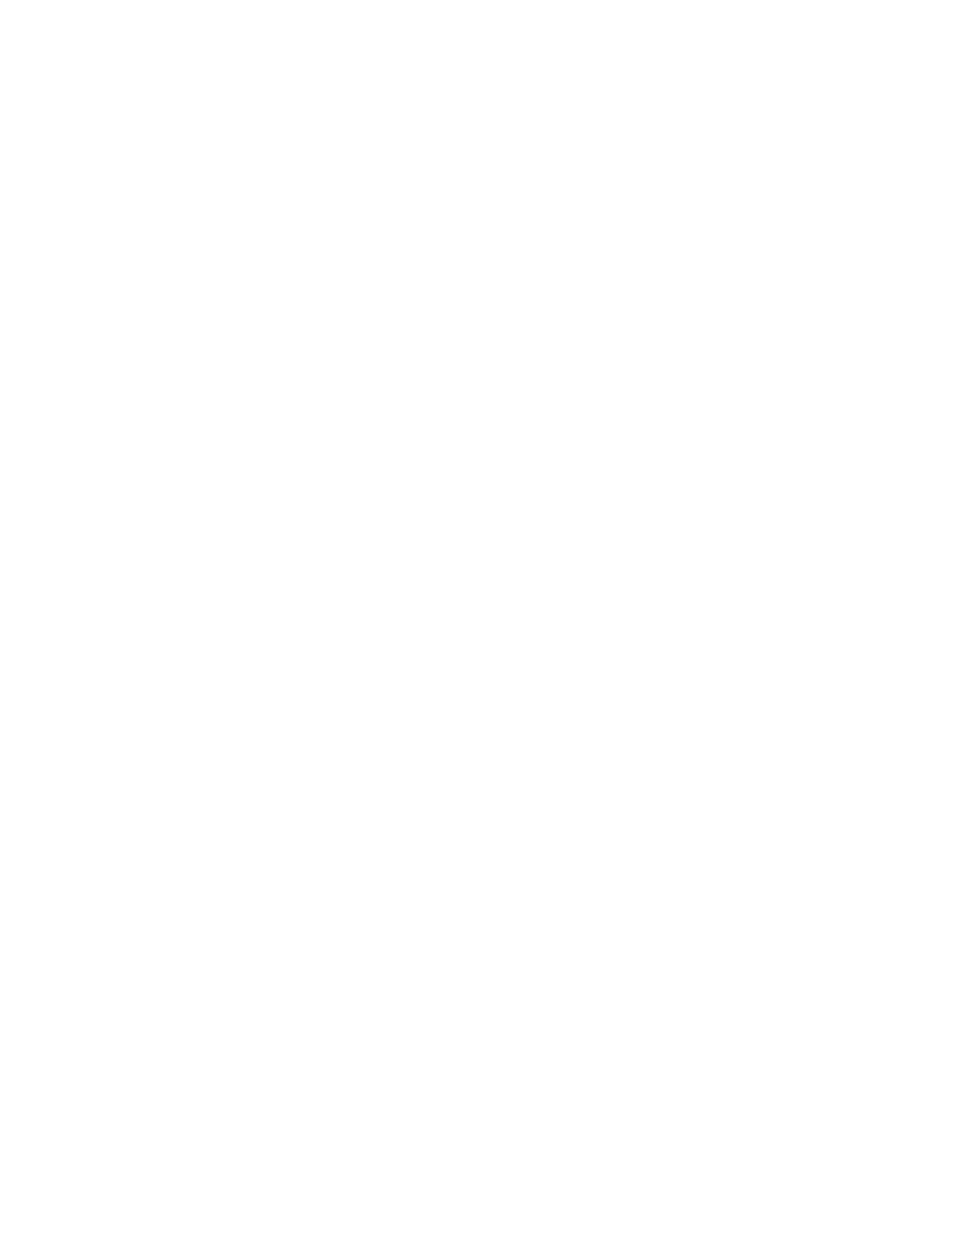 Anani Salon & Spa